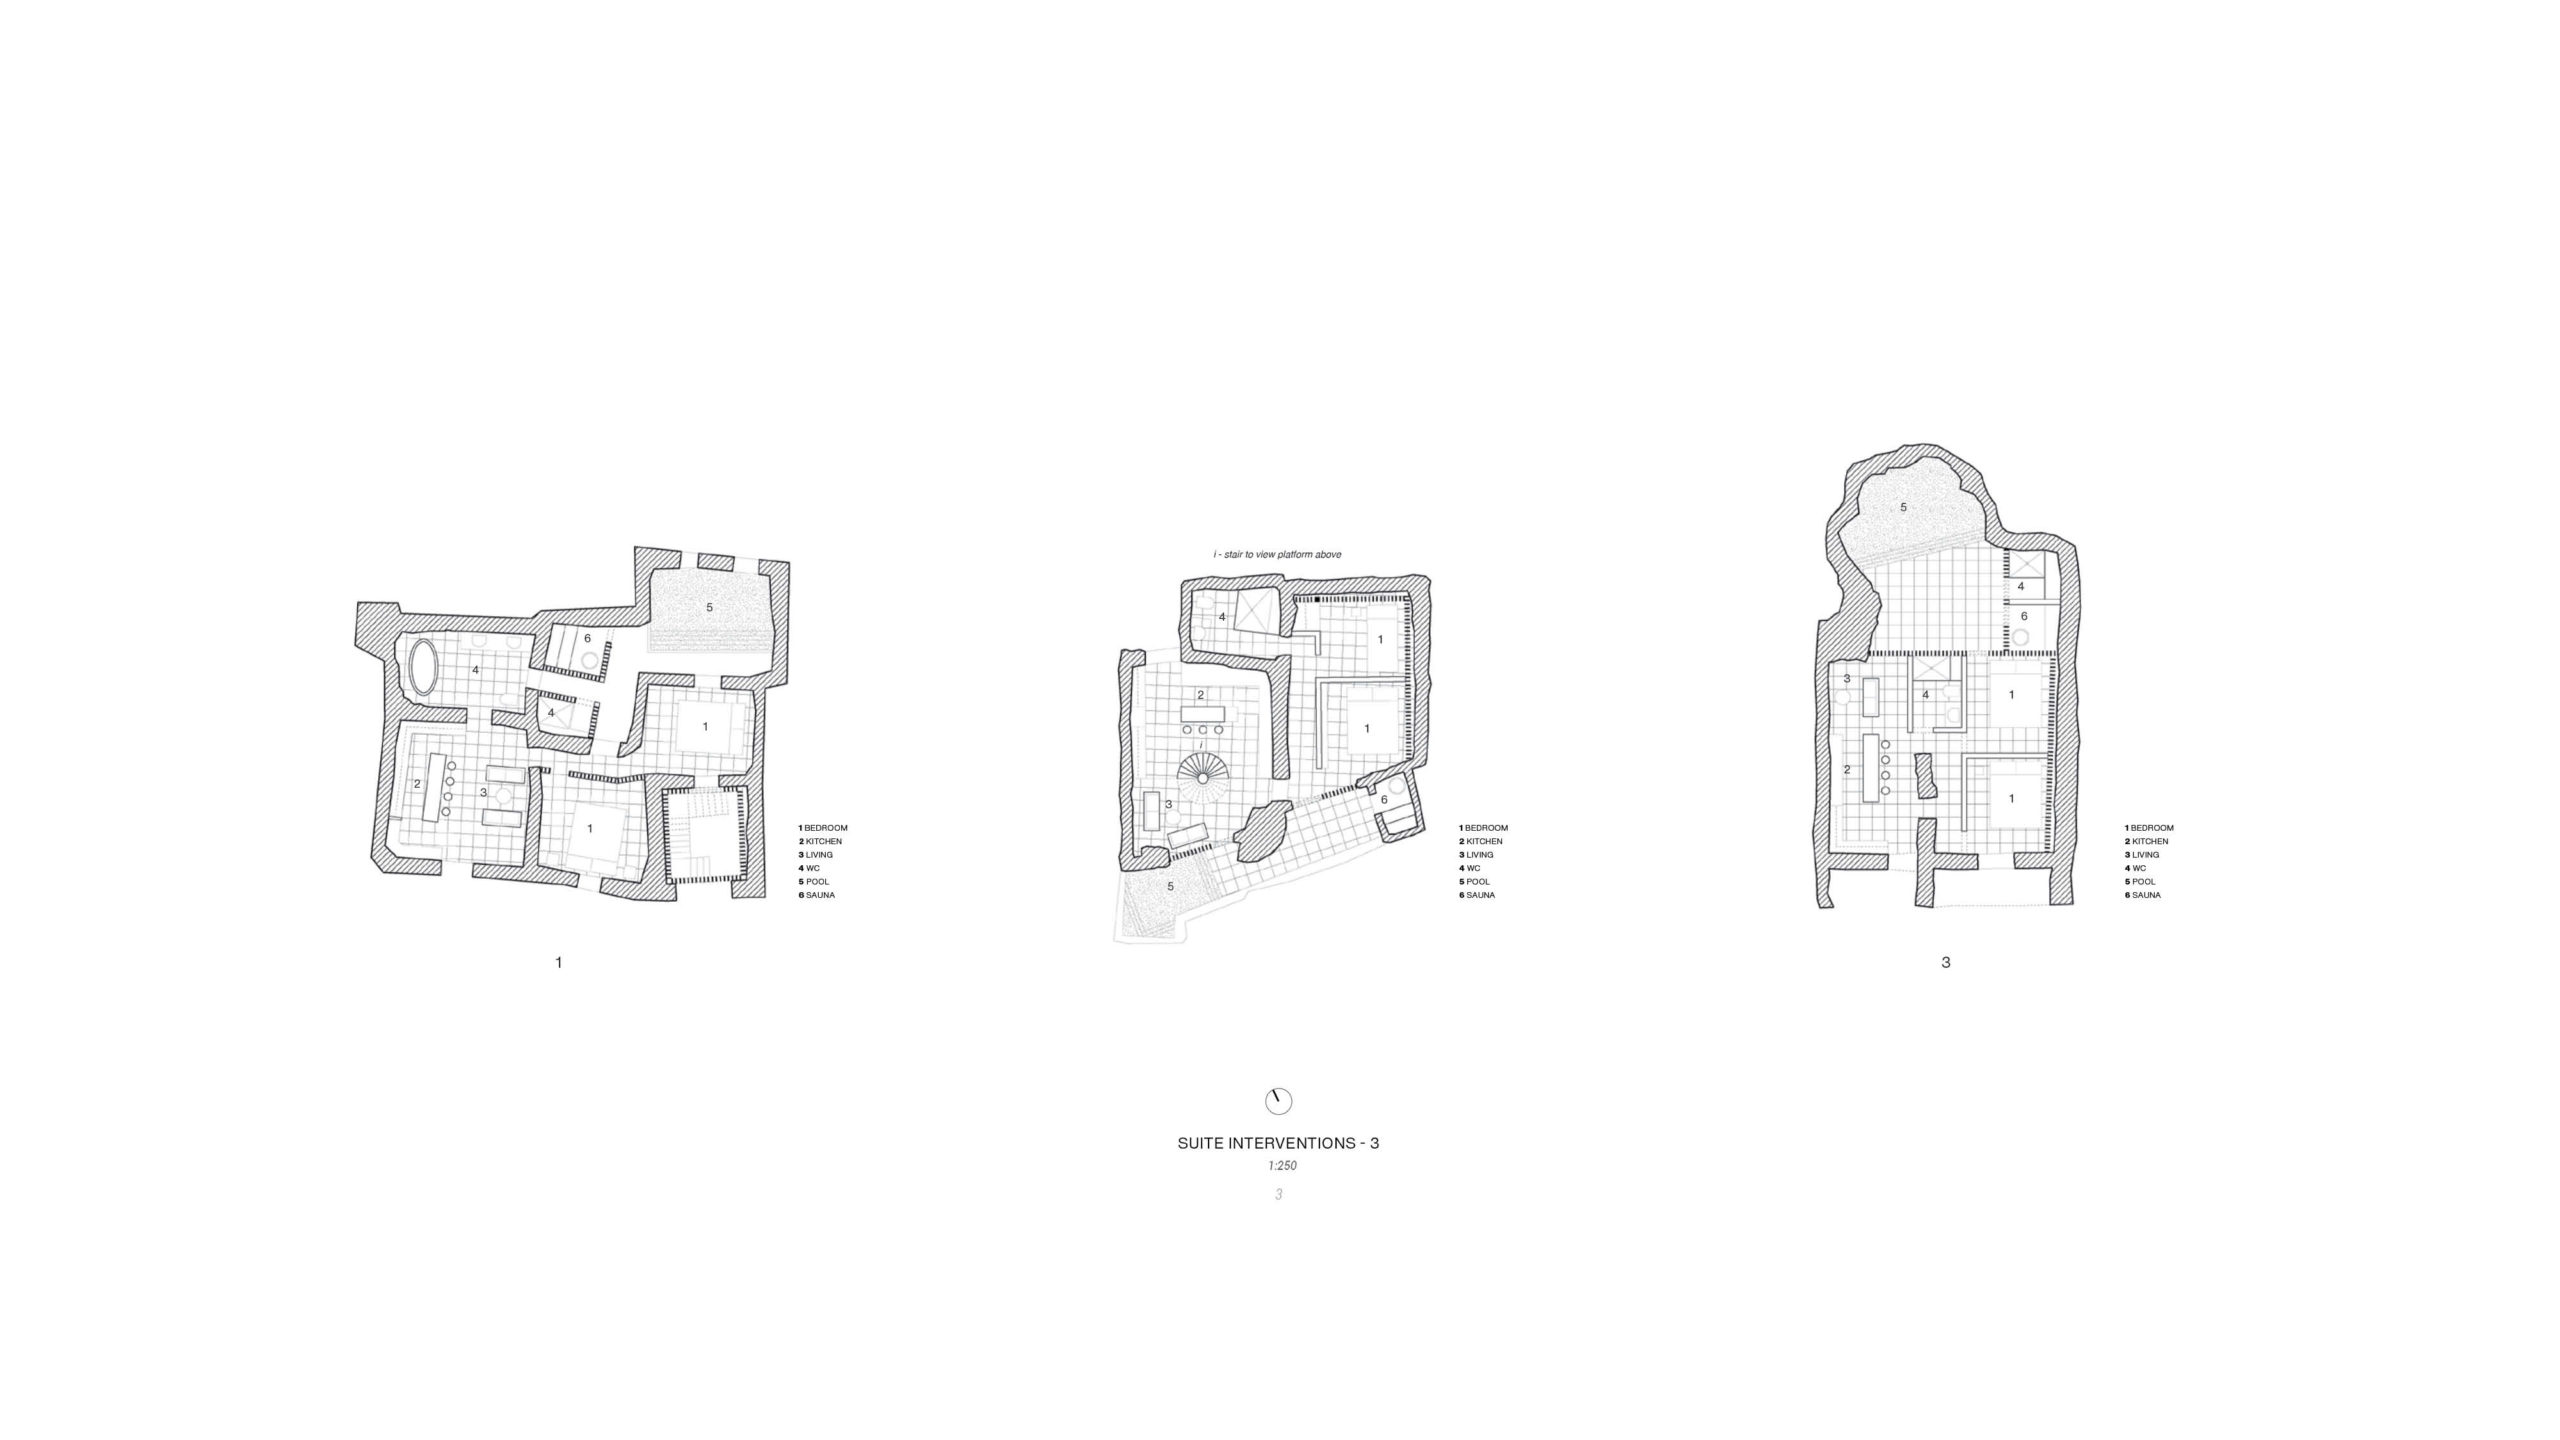 Unbuilt : TRACES - GHOST TOWN REFUGE, at Craco, Italy, by Claudio C. Araya, Yahya Abdullah 46